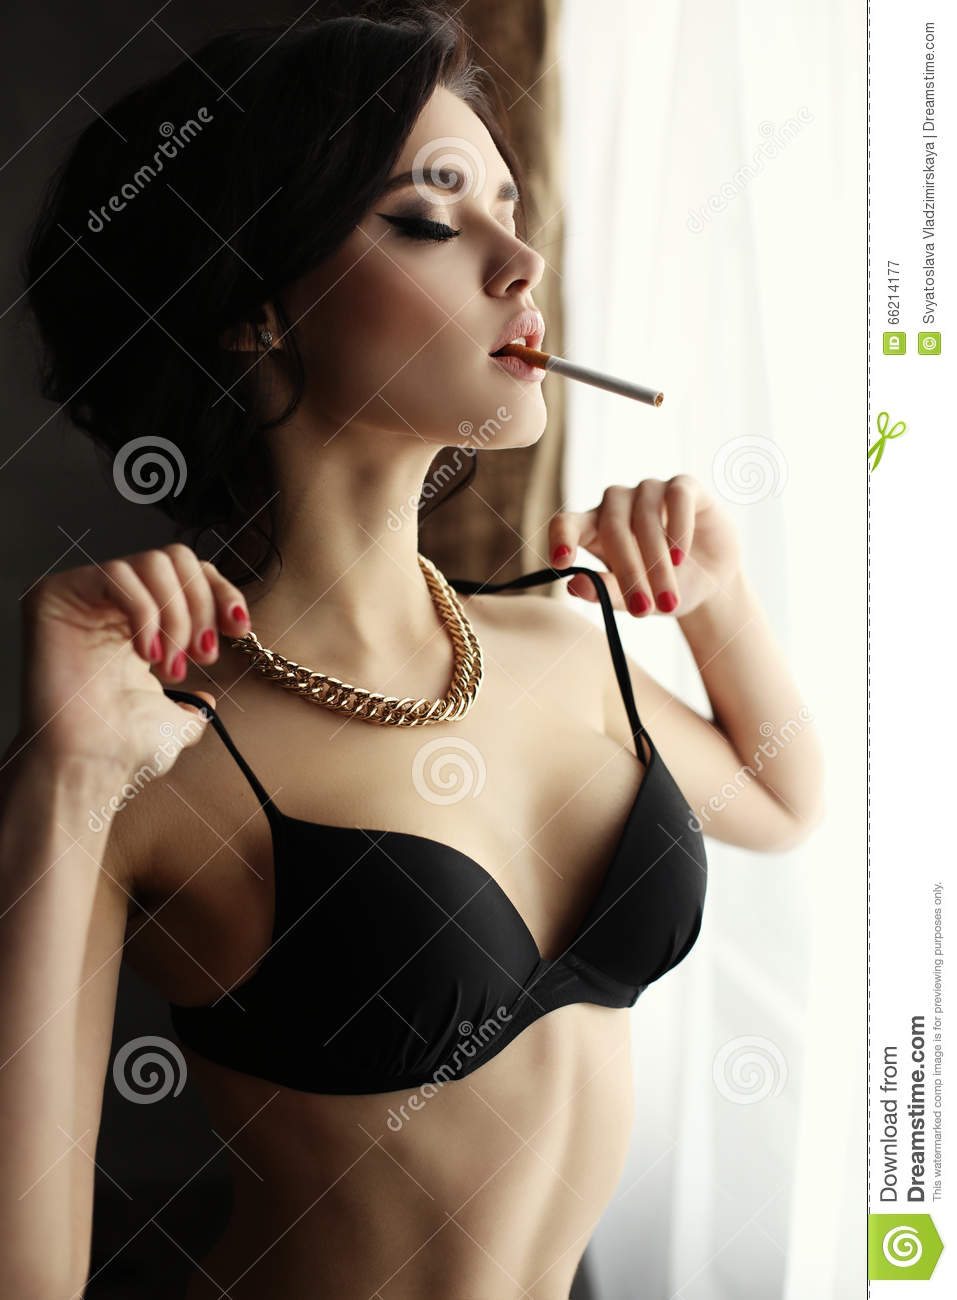 beautiful women smoking naked